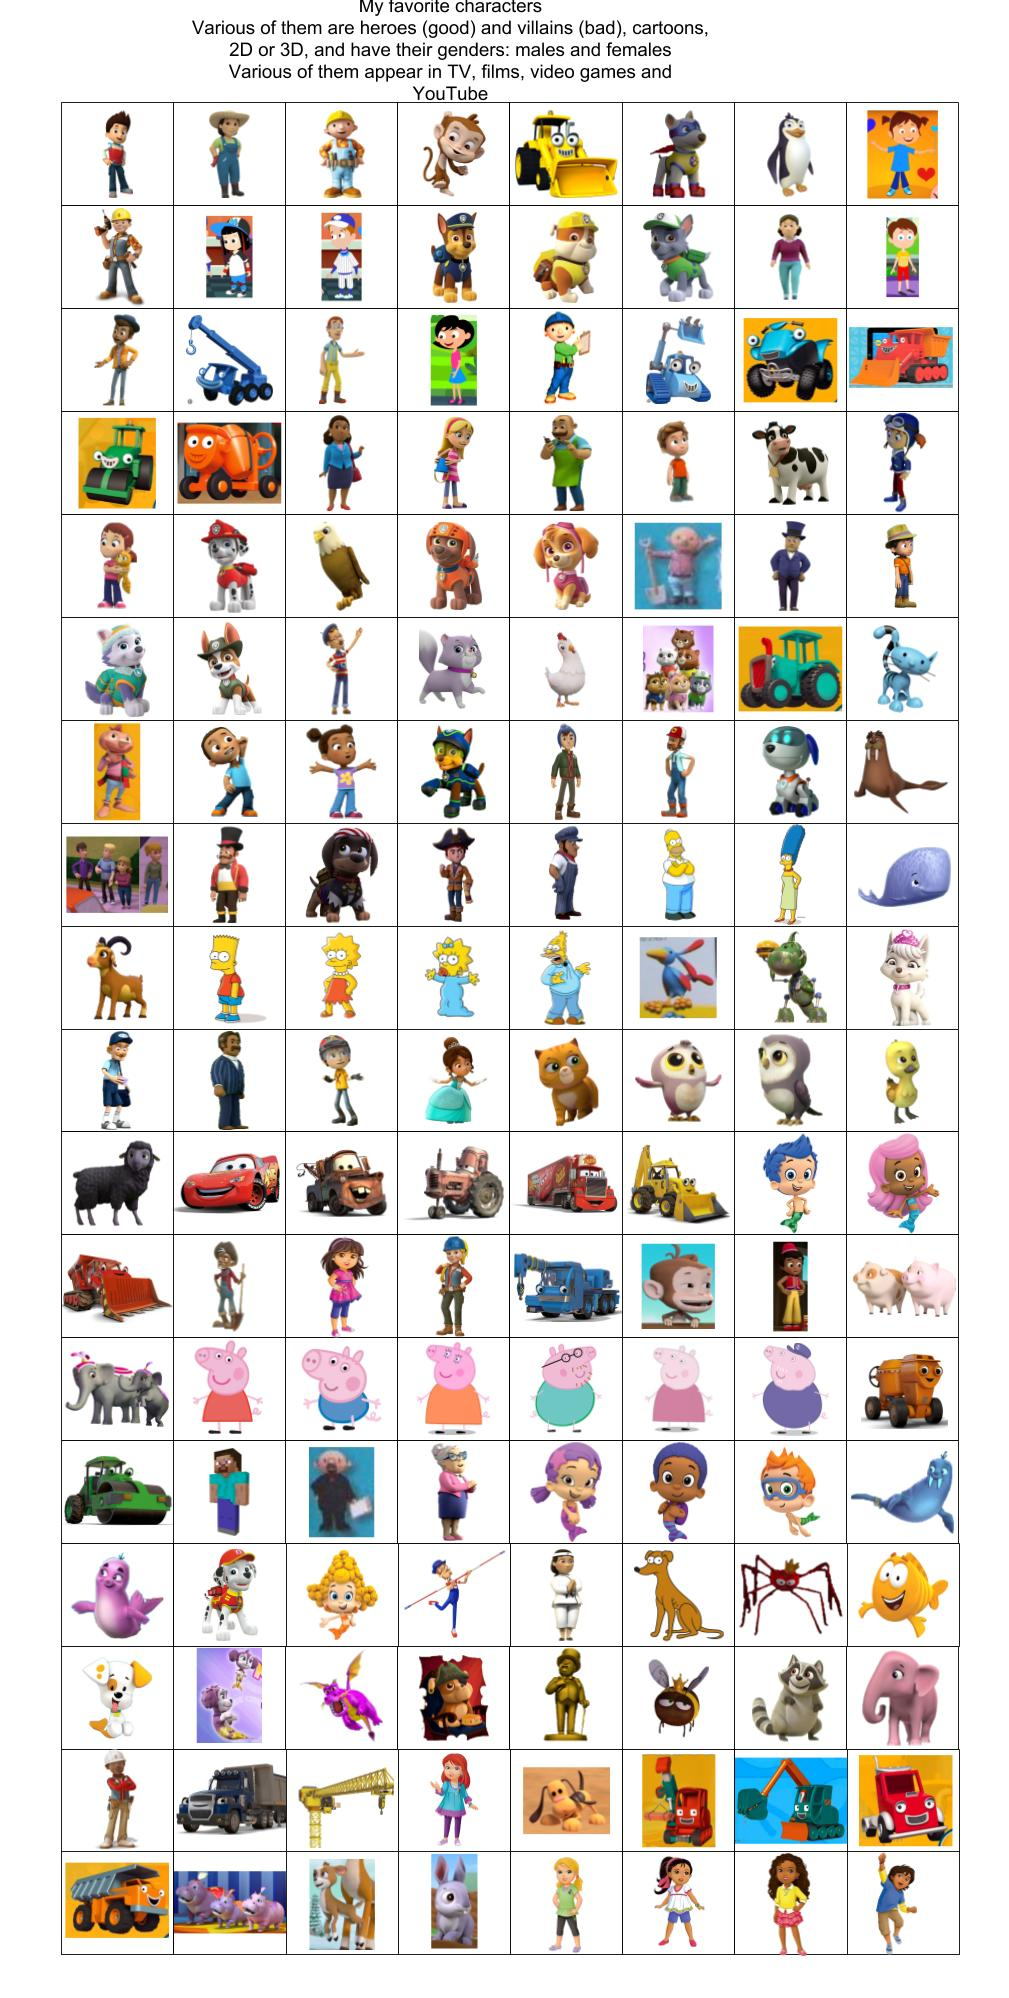 various cartoon characters by agustinsepulvedave on deviantart various cartoon characters by